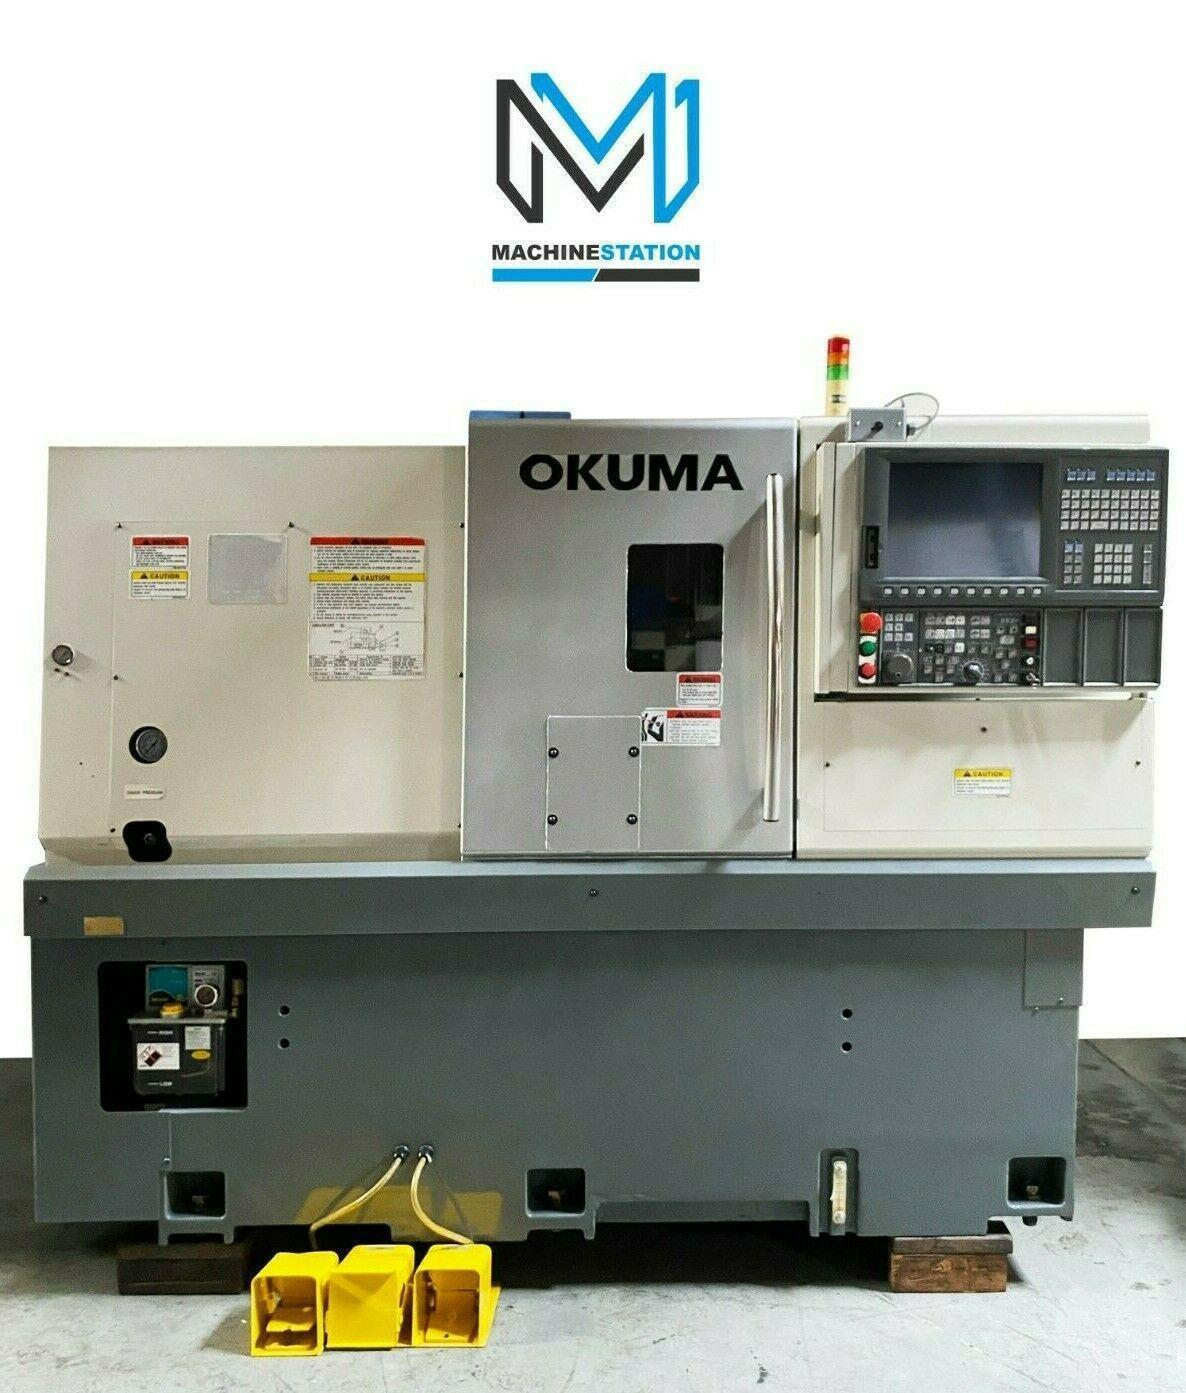 Okuma Tatung ES-L10 II CNC Turning Center